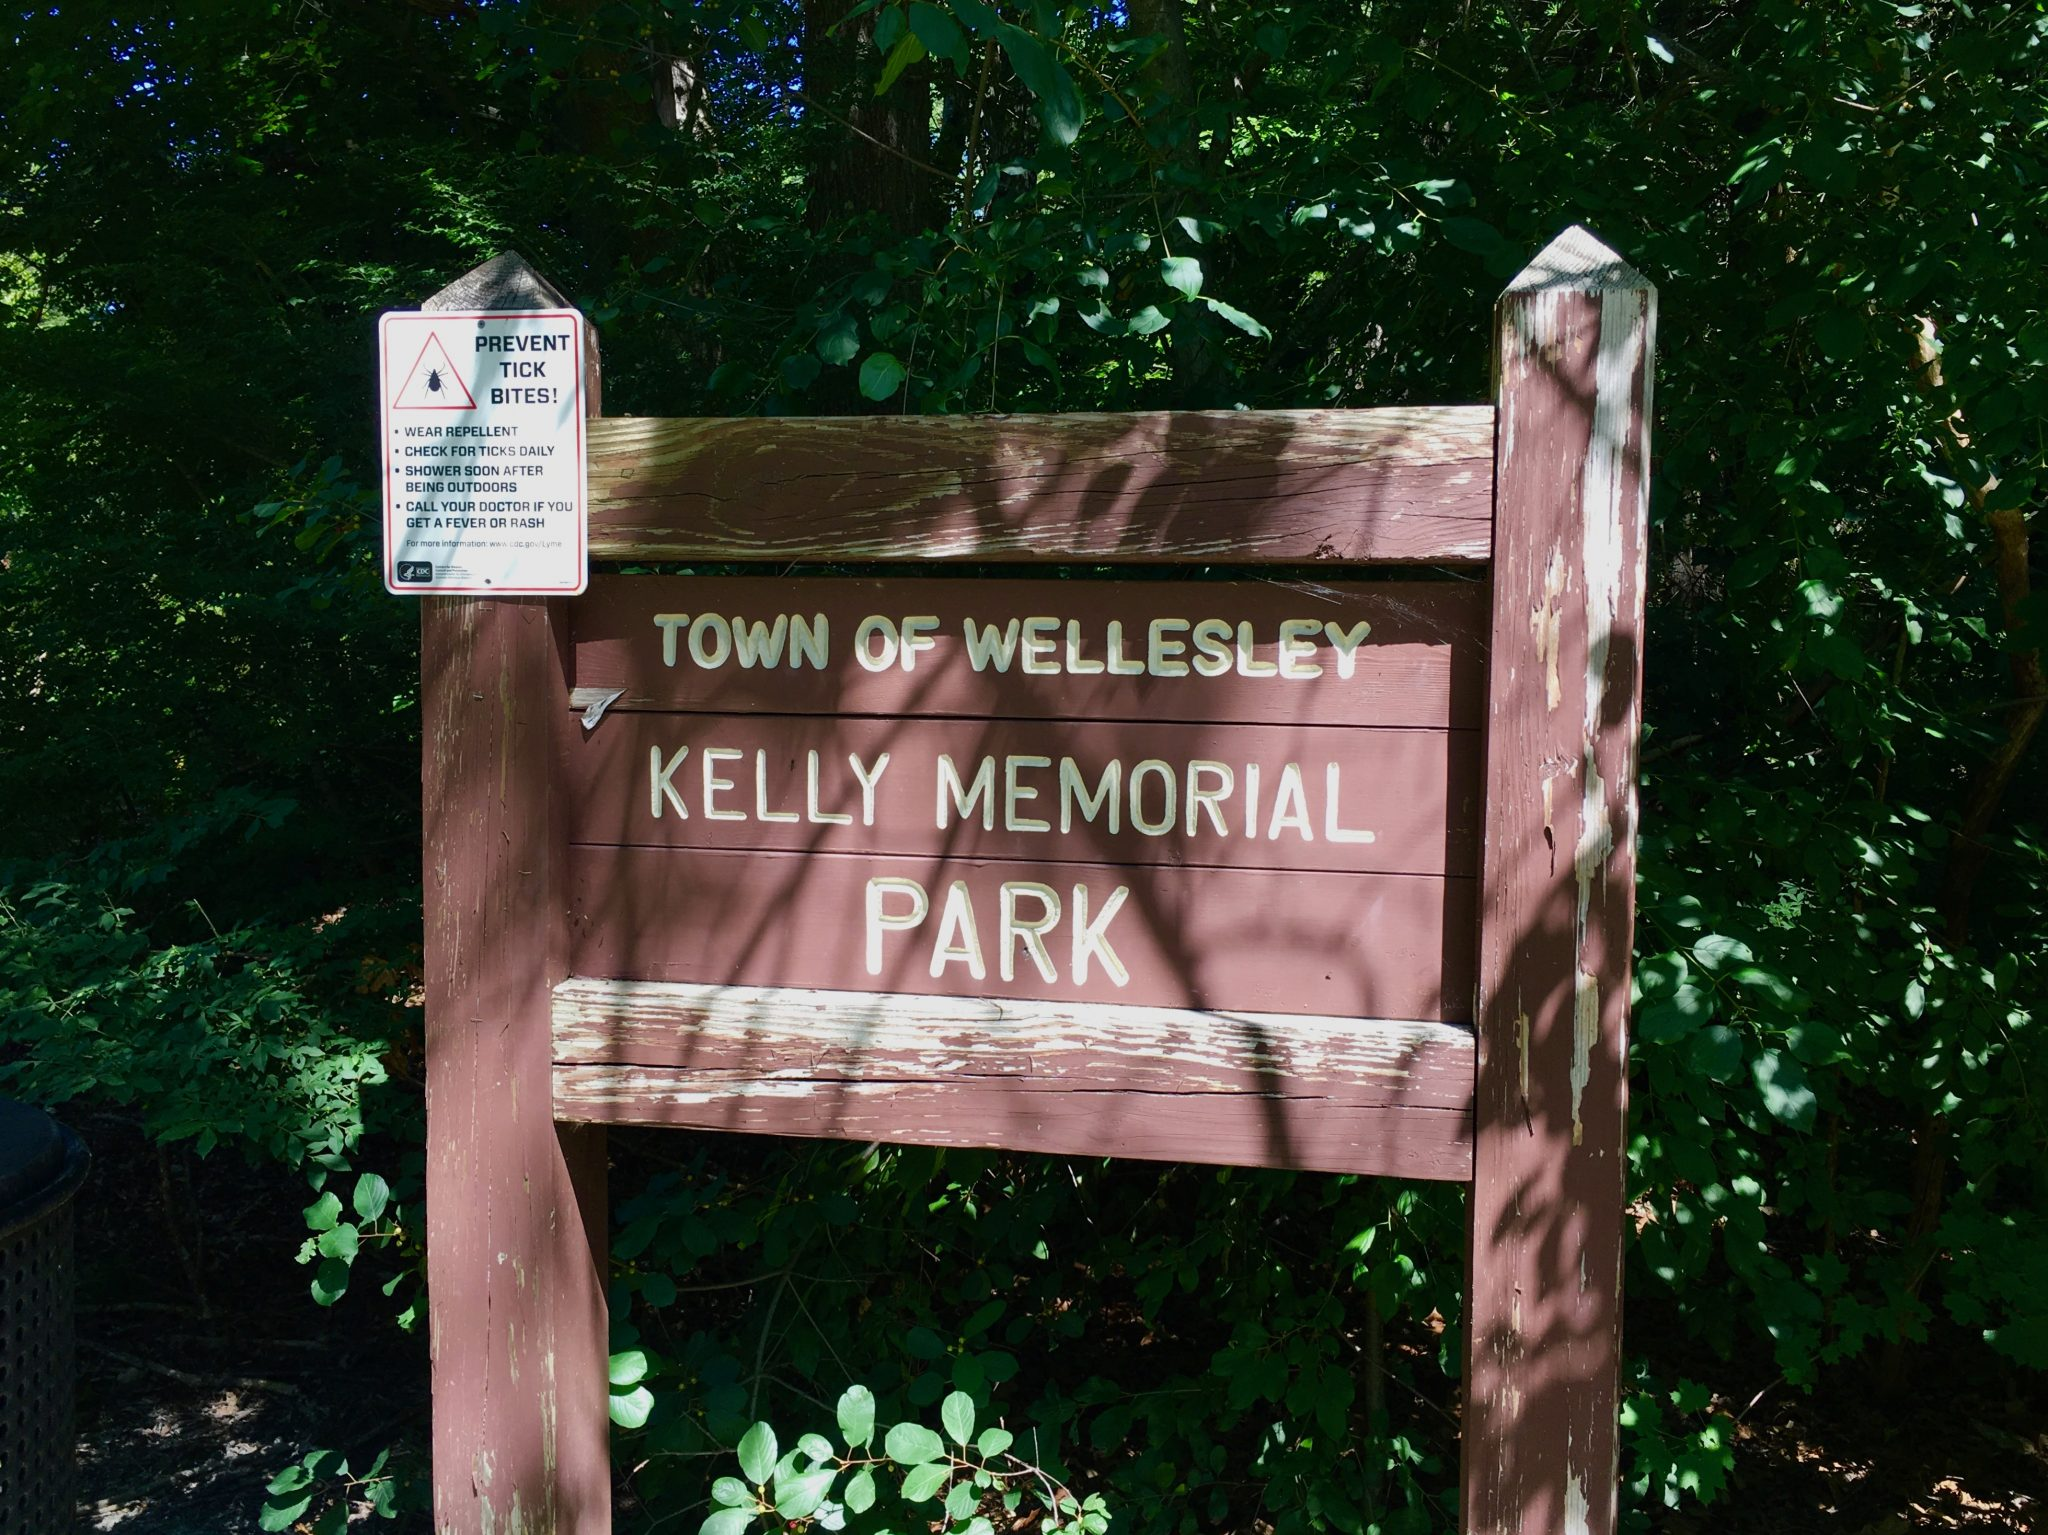 Kelly Memorial Park, Wellesley